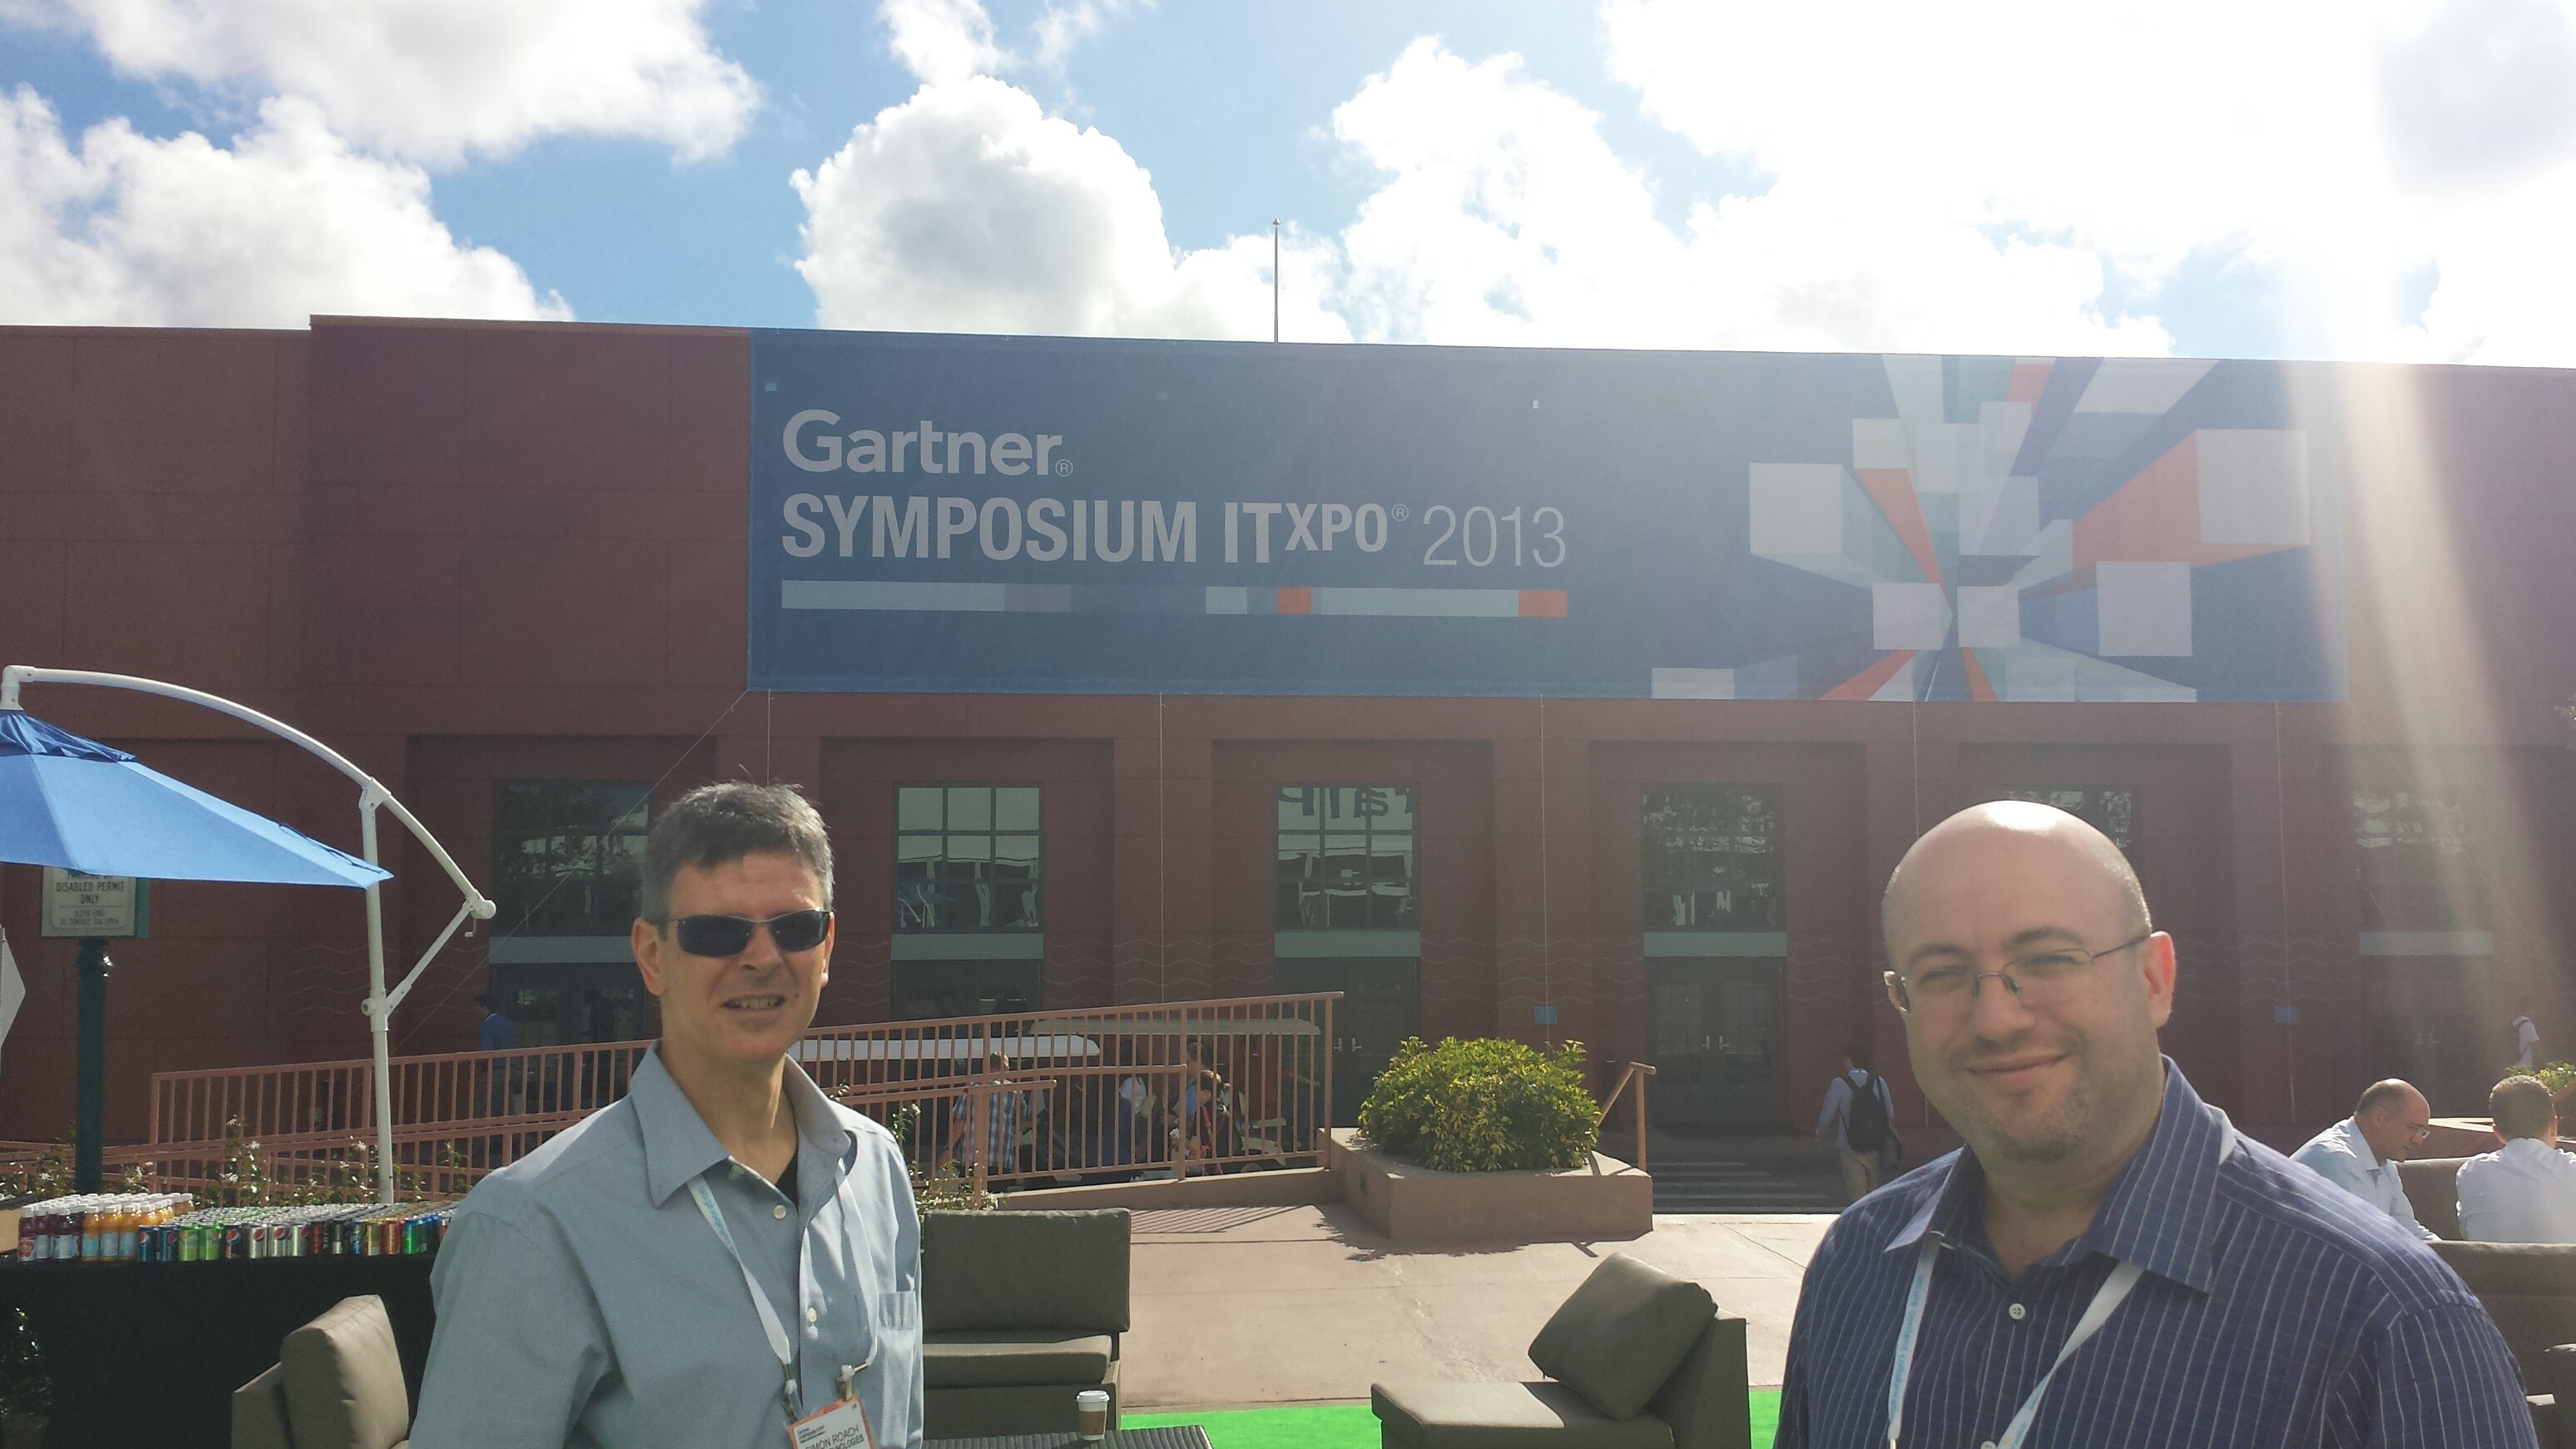 KEMP CTO Simon Roach – Observations on the Future of IT from the Gartner Symposium